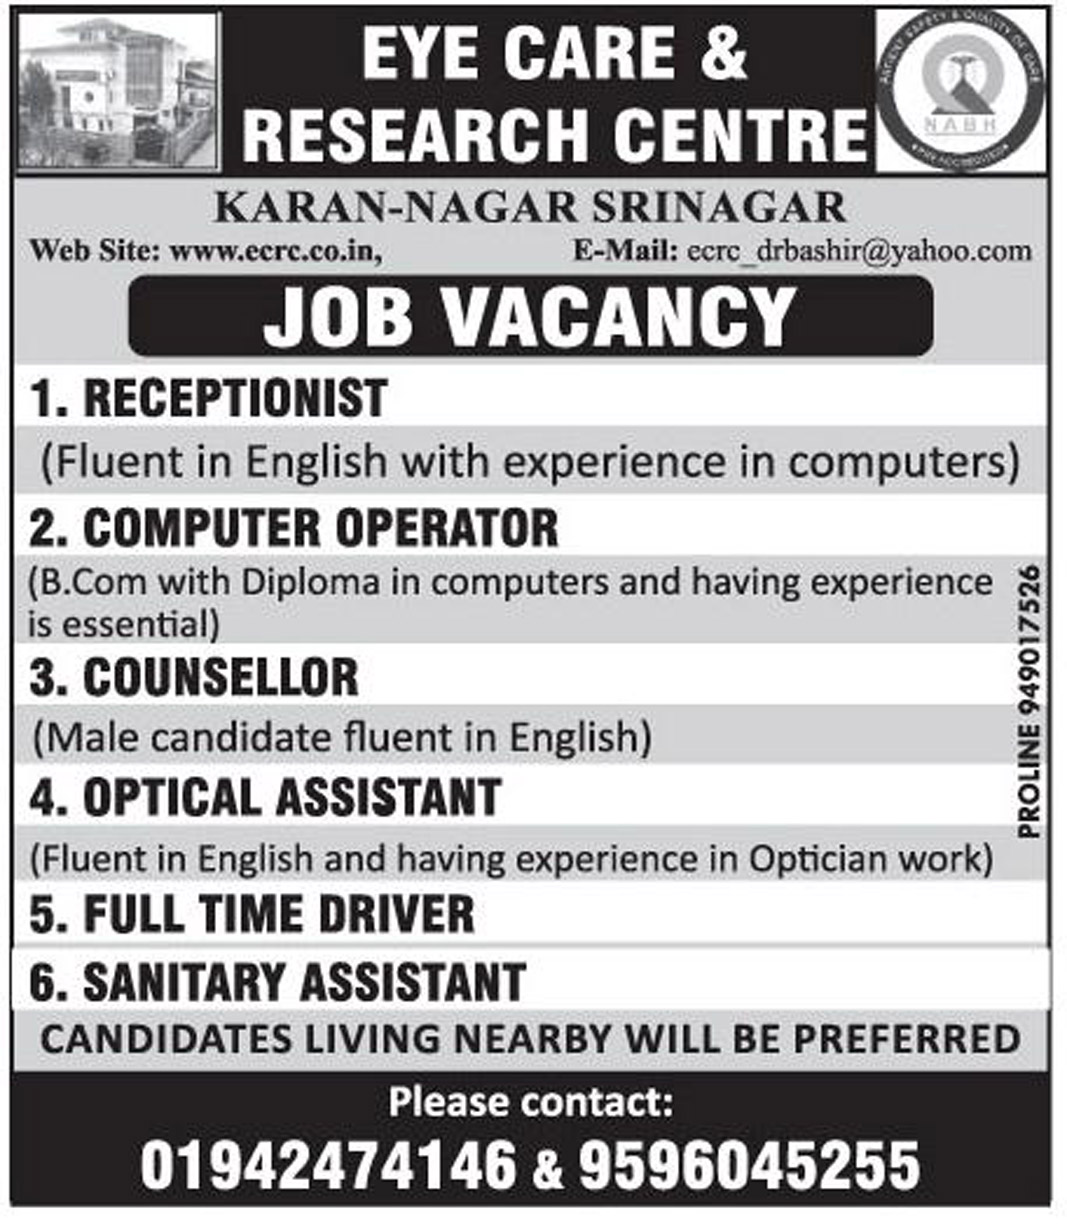 Jobs In  Eye Care & Research Centre